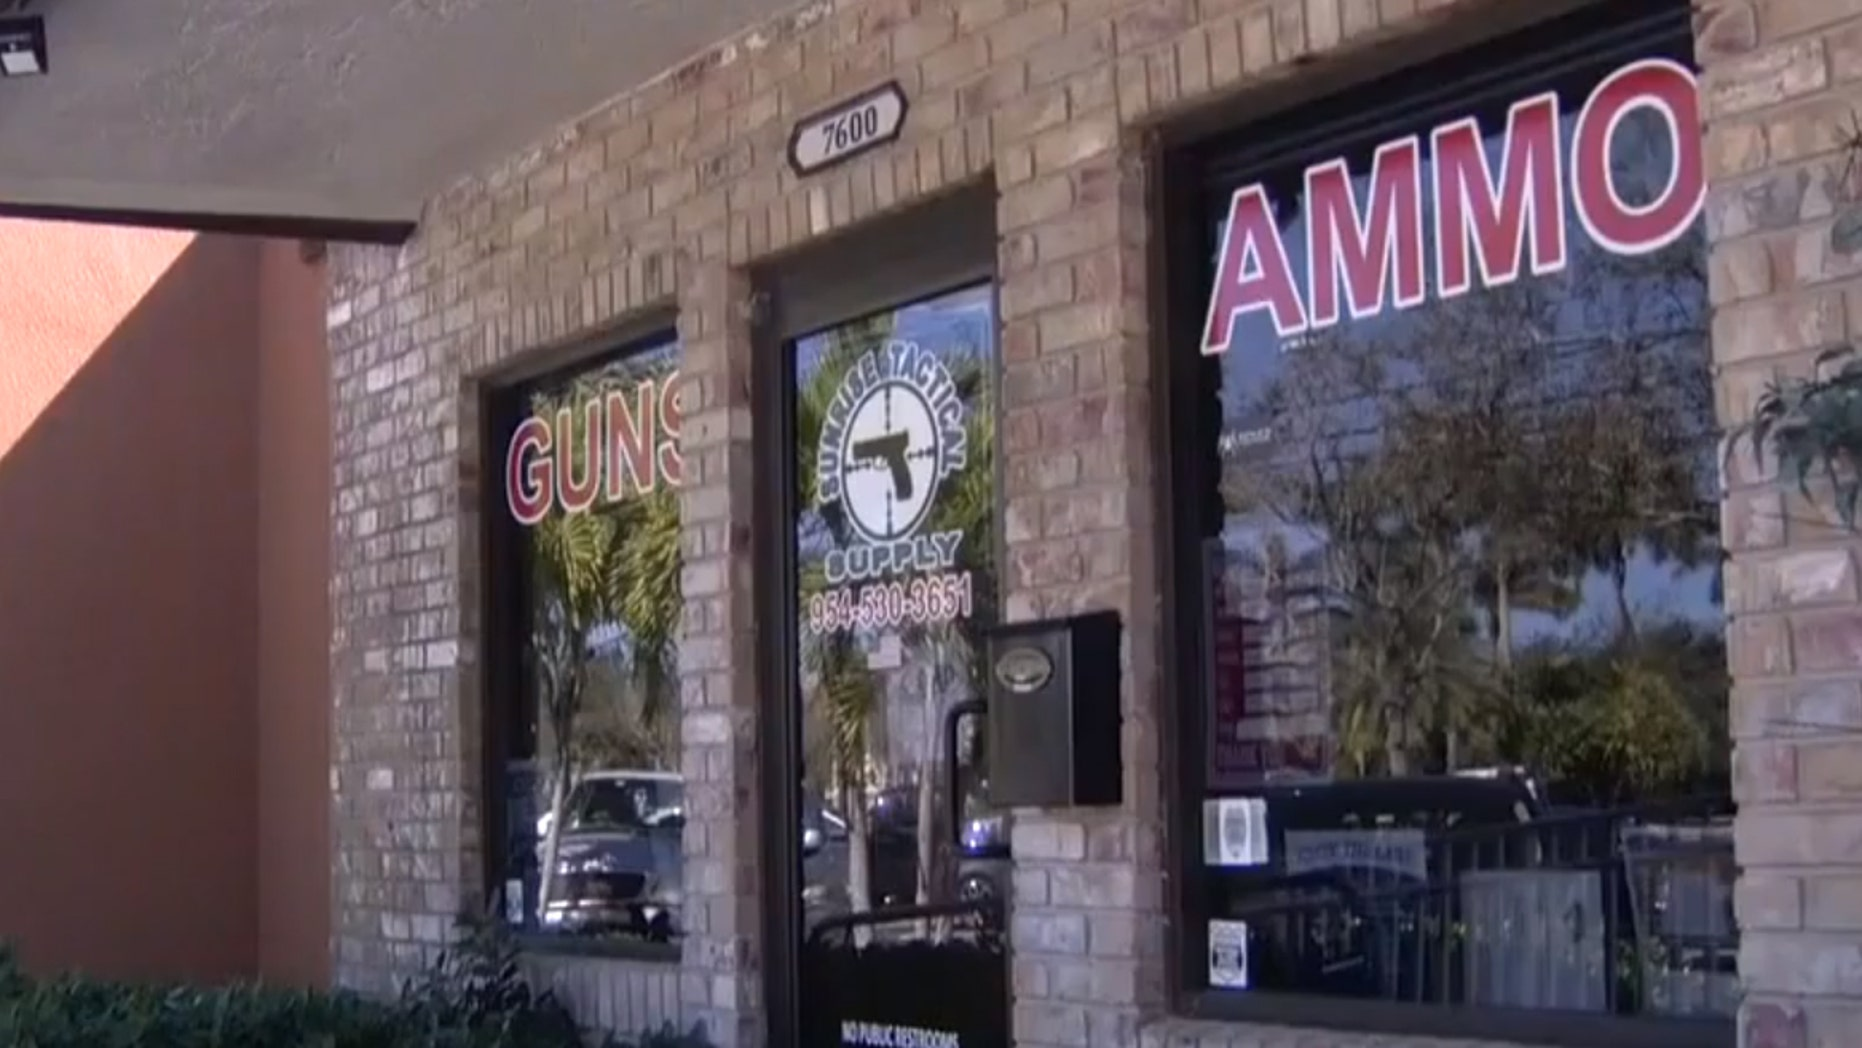 Law enforcement officials confirmed Thursday that suspected gunman Nikolas Cruz legally purchased his AR-15 semi-automatic rifle at Sunrise Tactical Supply in Coral Springs, Florida.